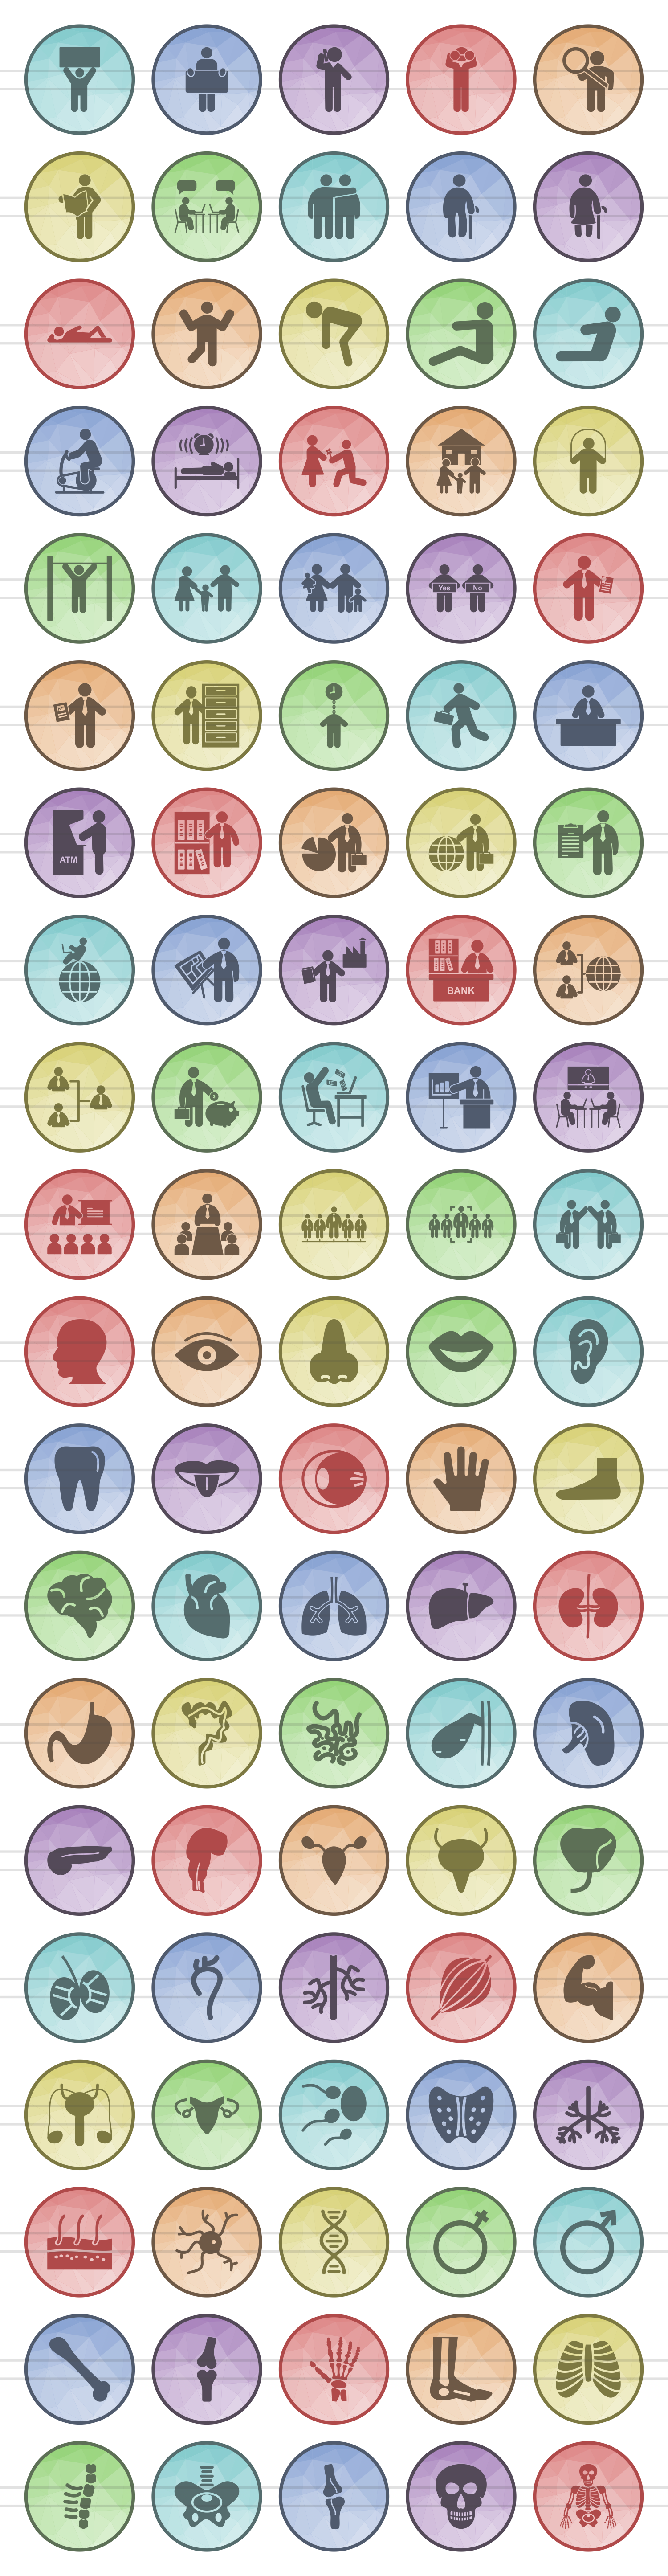 100 Humans & Anatomy Filled Low Poly Icons example image 2